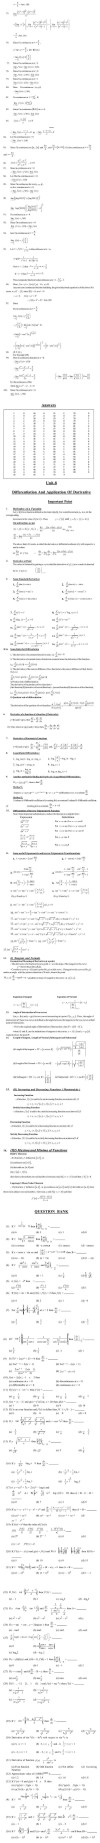 JEE Question Bank Maths - Limit & Continuity